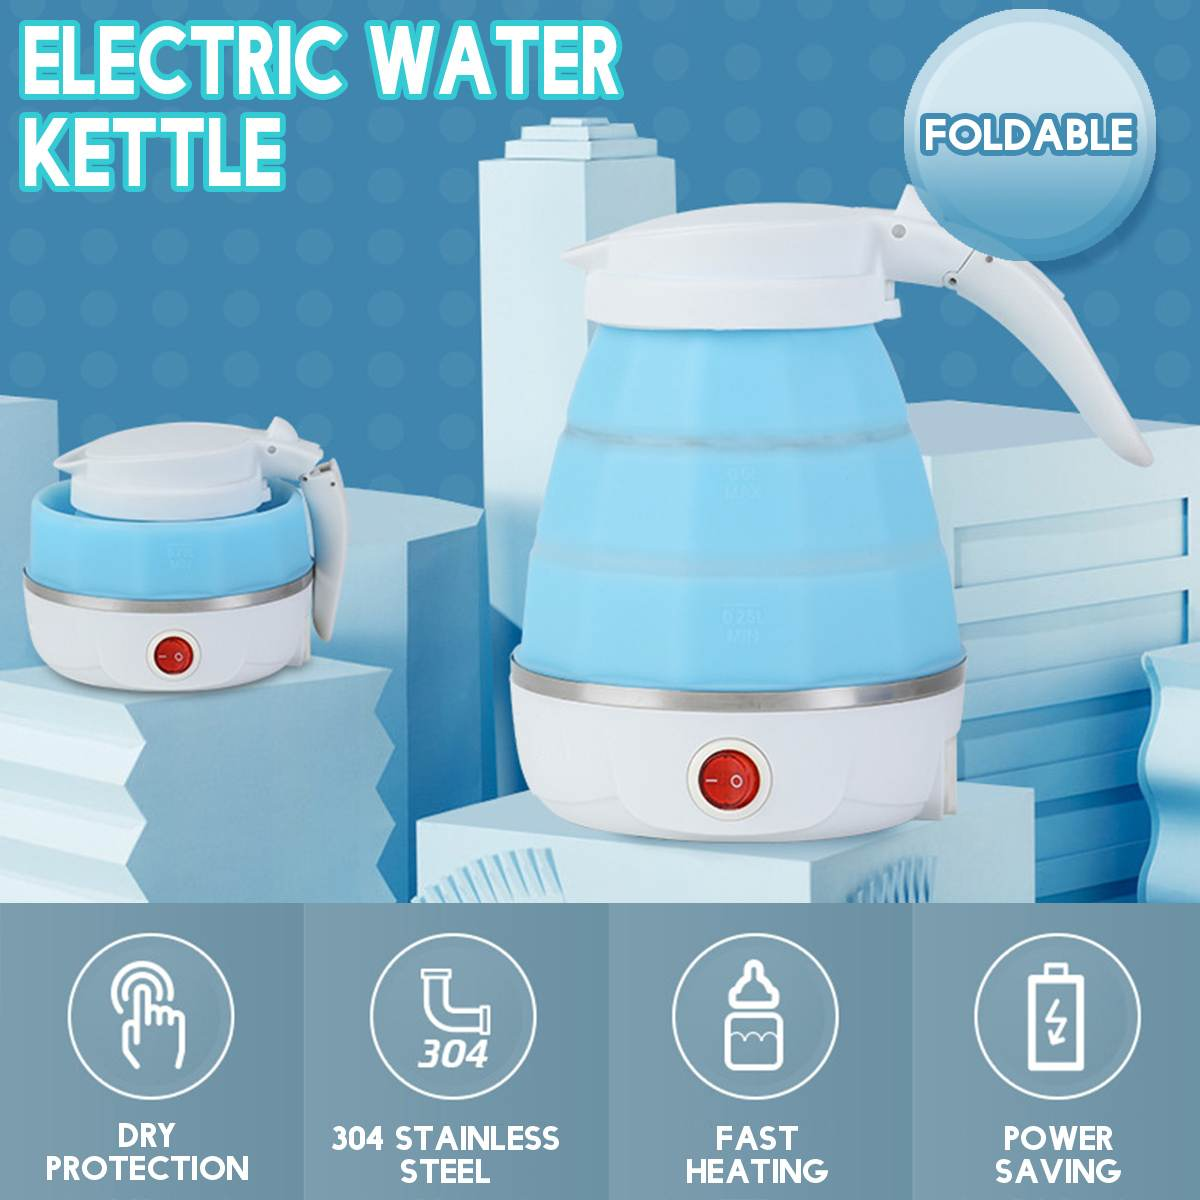 0.6L Electric Kettle Safety Silicone Foldable Portable Travel Camping Water Boiler Heater 220V 700W Mini Home Electric Appliance